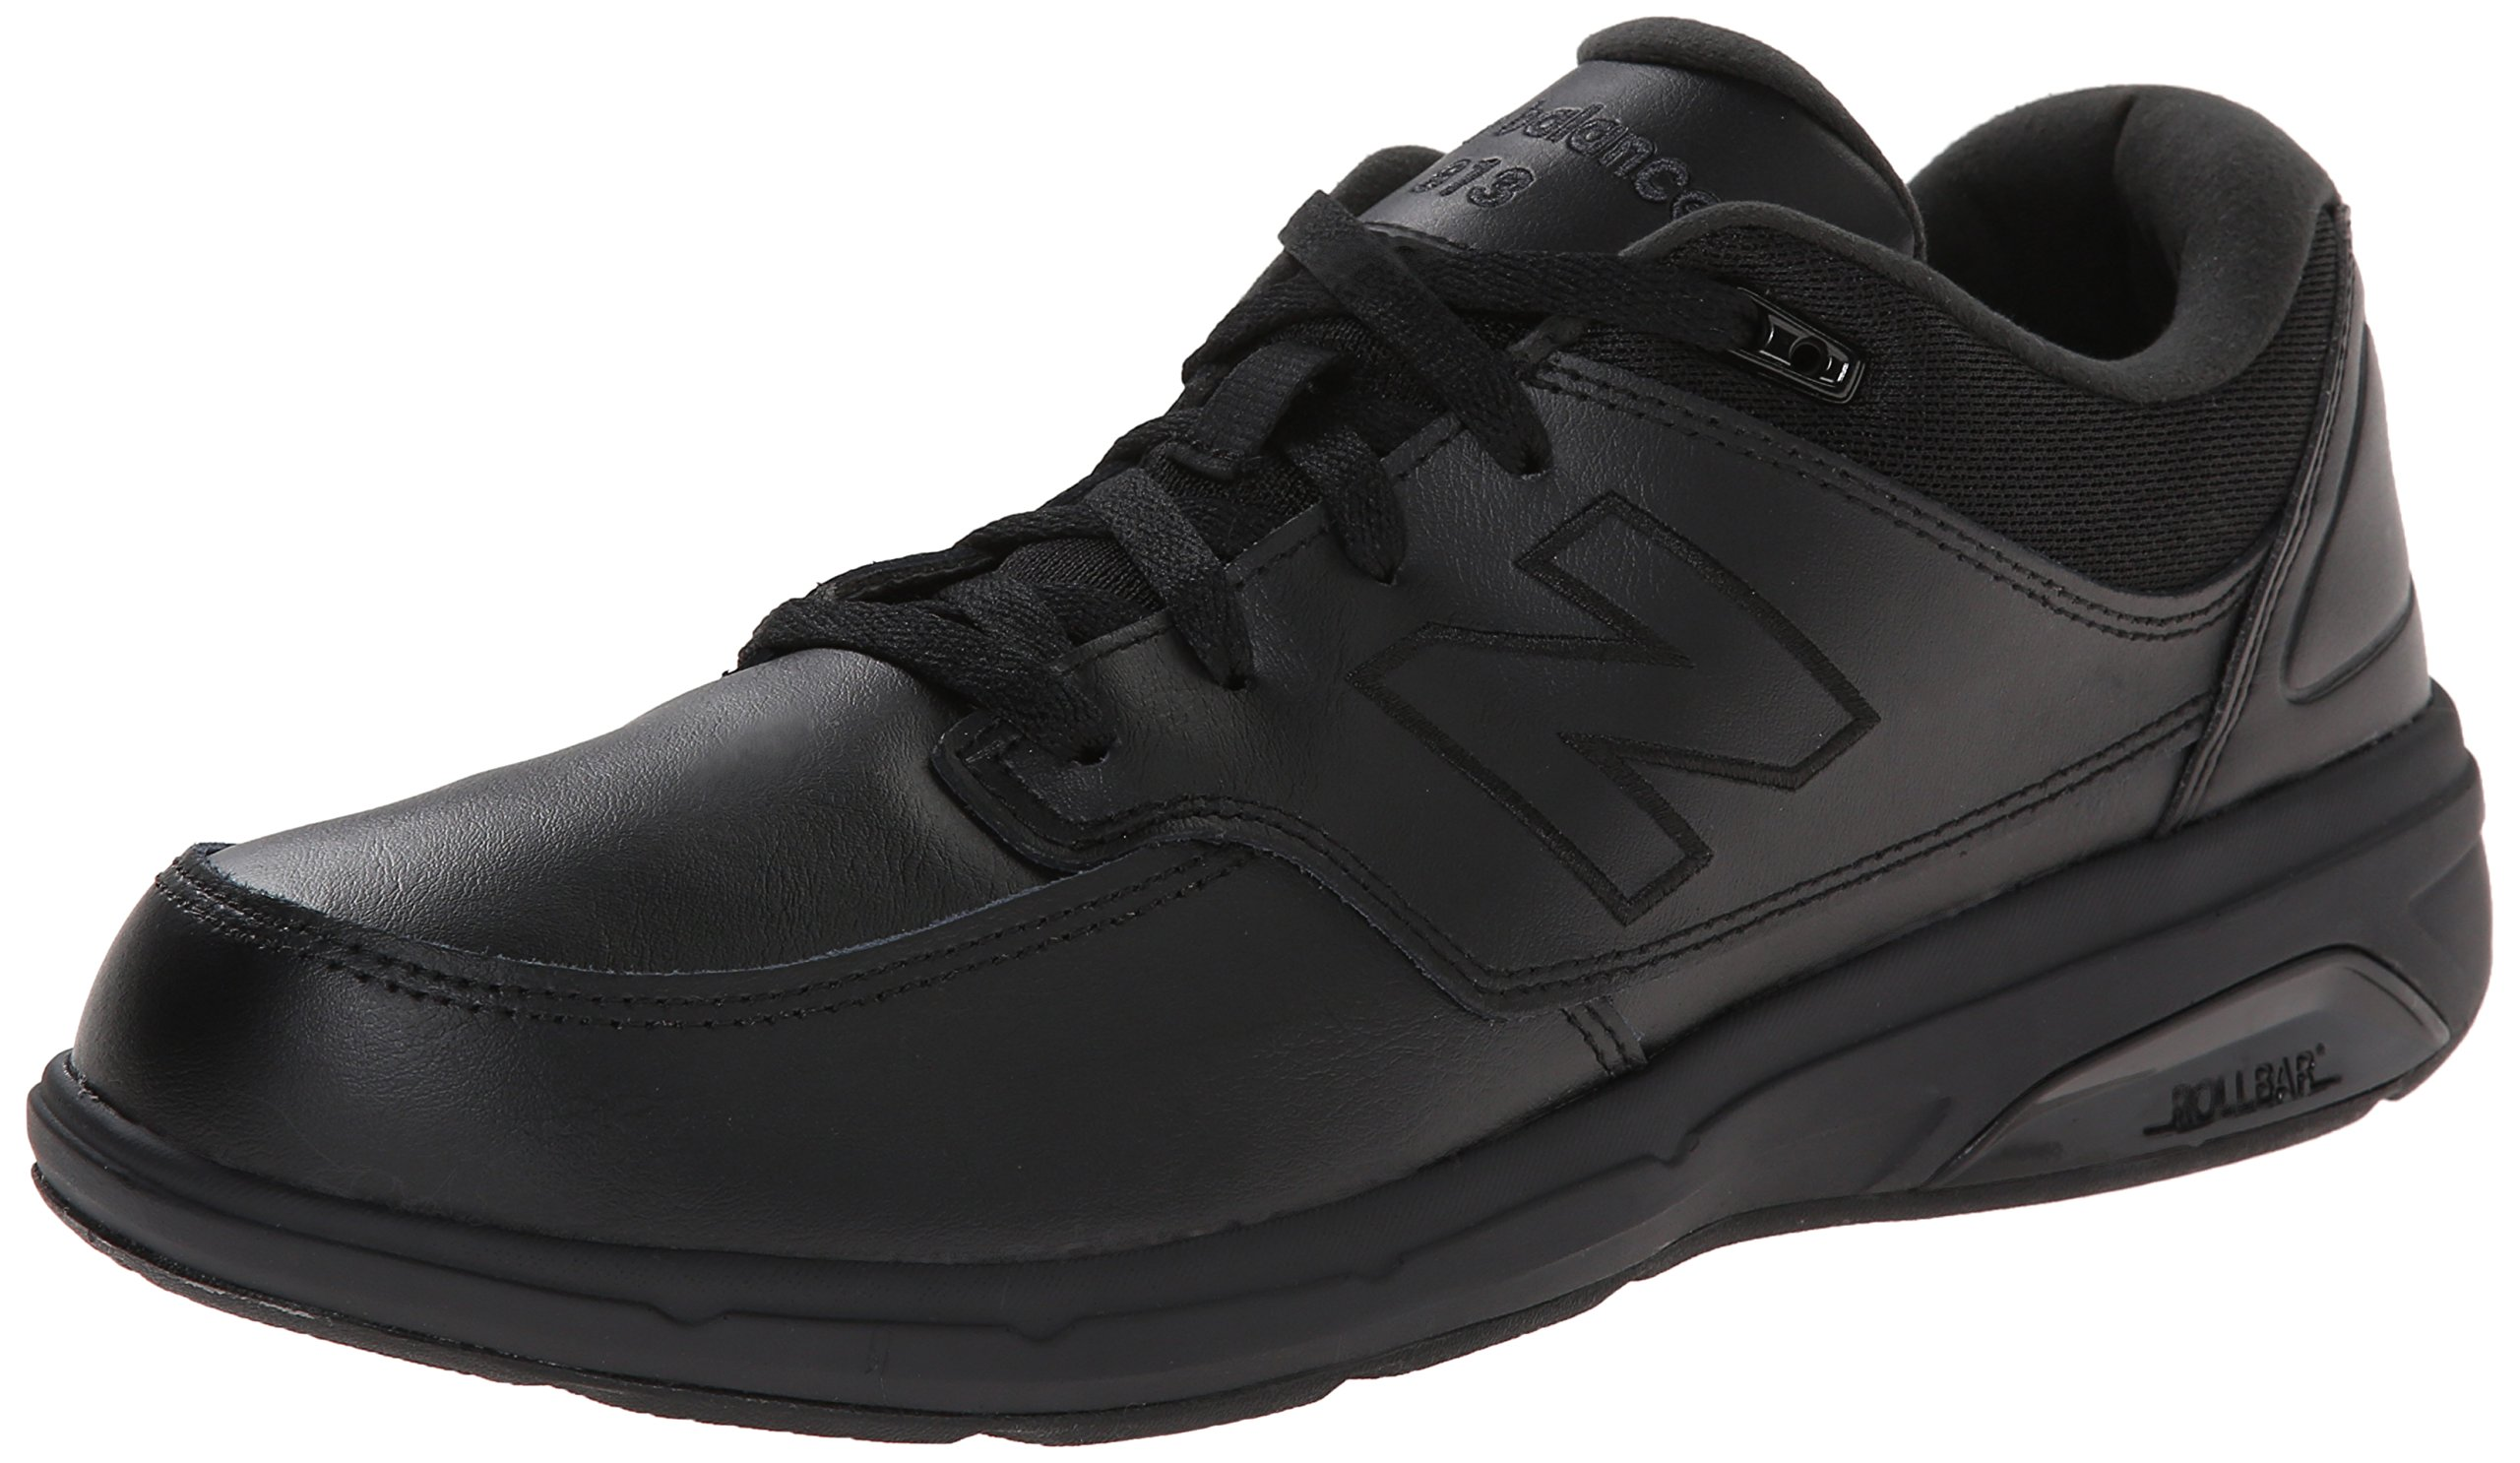 New Balance Men's MW813BK Walking Shoe-M Walking Shoe, Black, 10.5 D US by New Balance